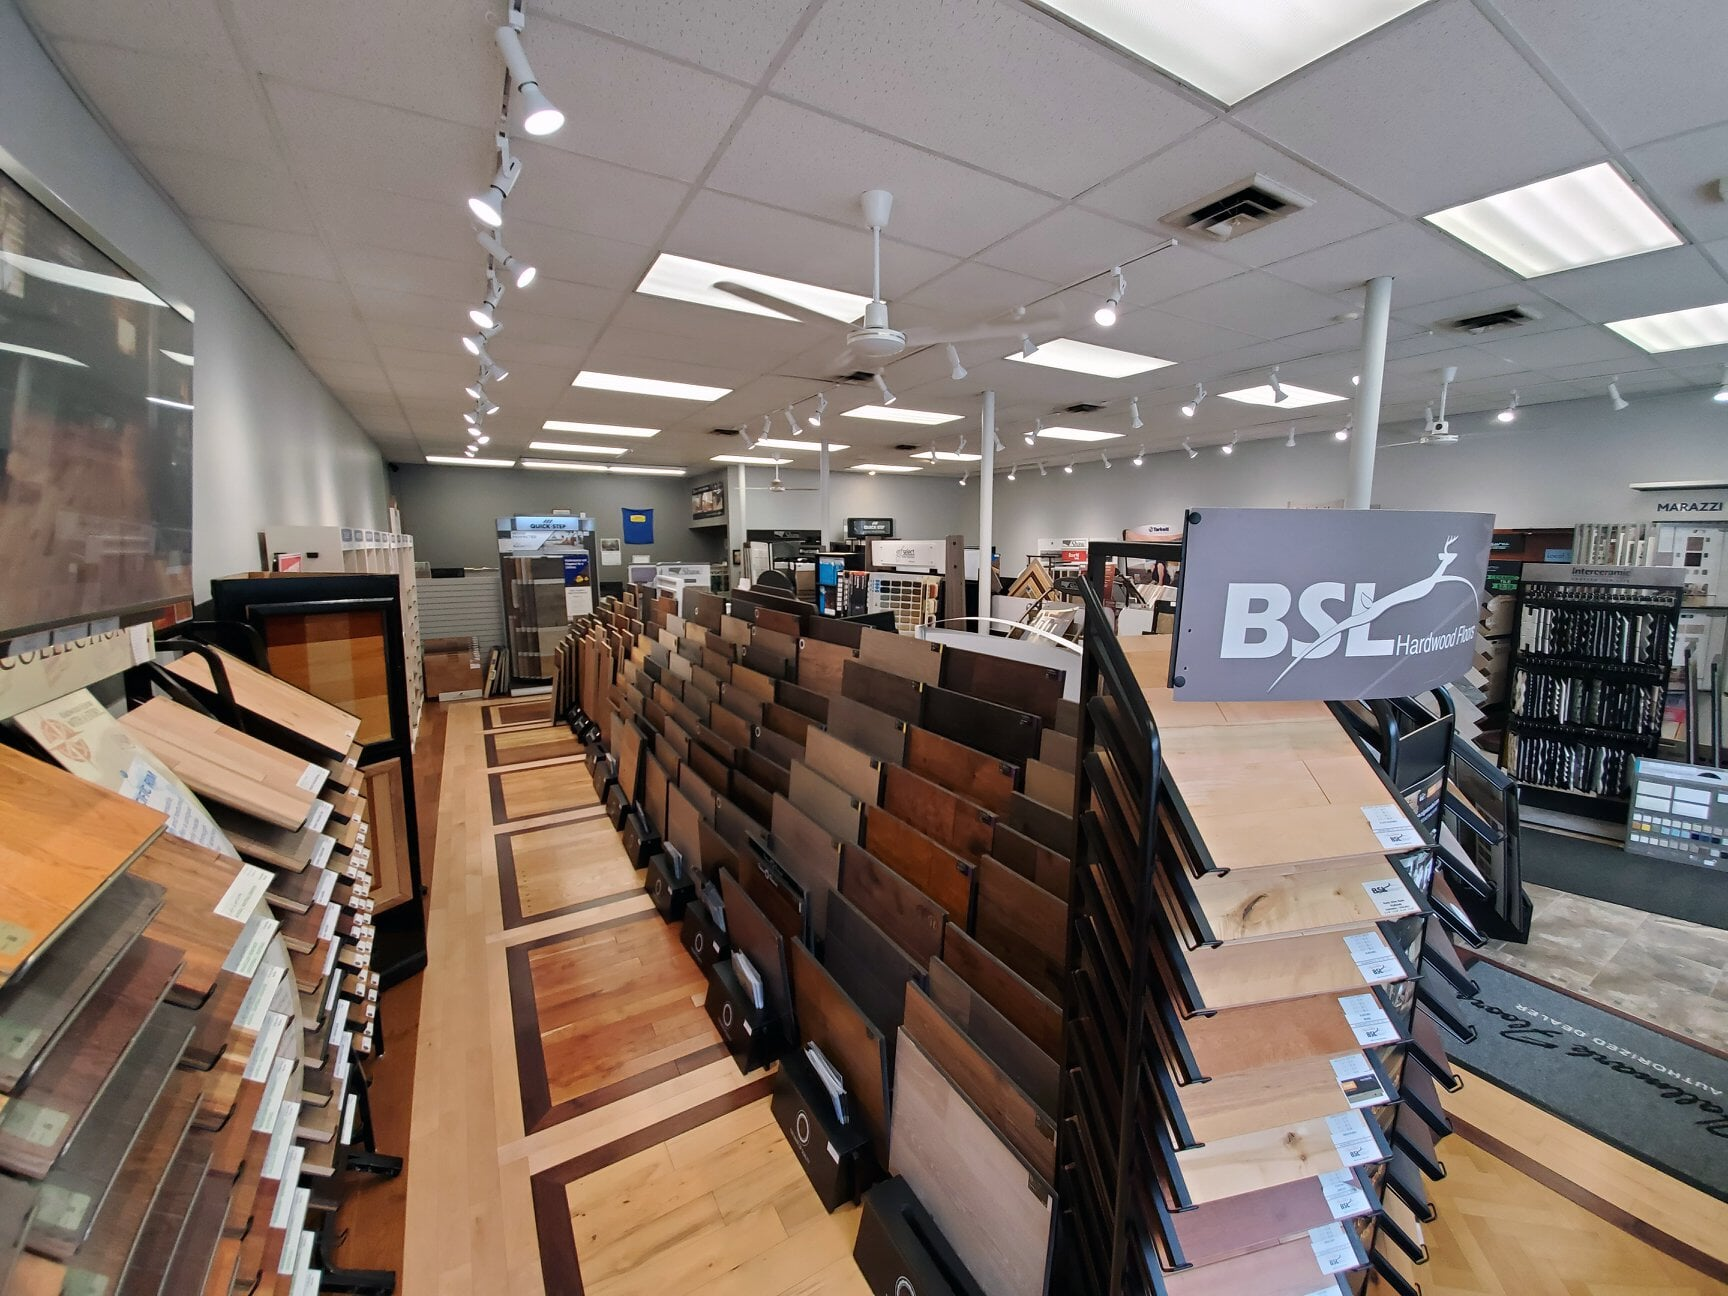 Our hardwood options for your Vernon, CT home even cover the Amazing Hardwood Floors showroom floors